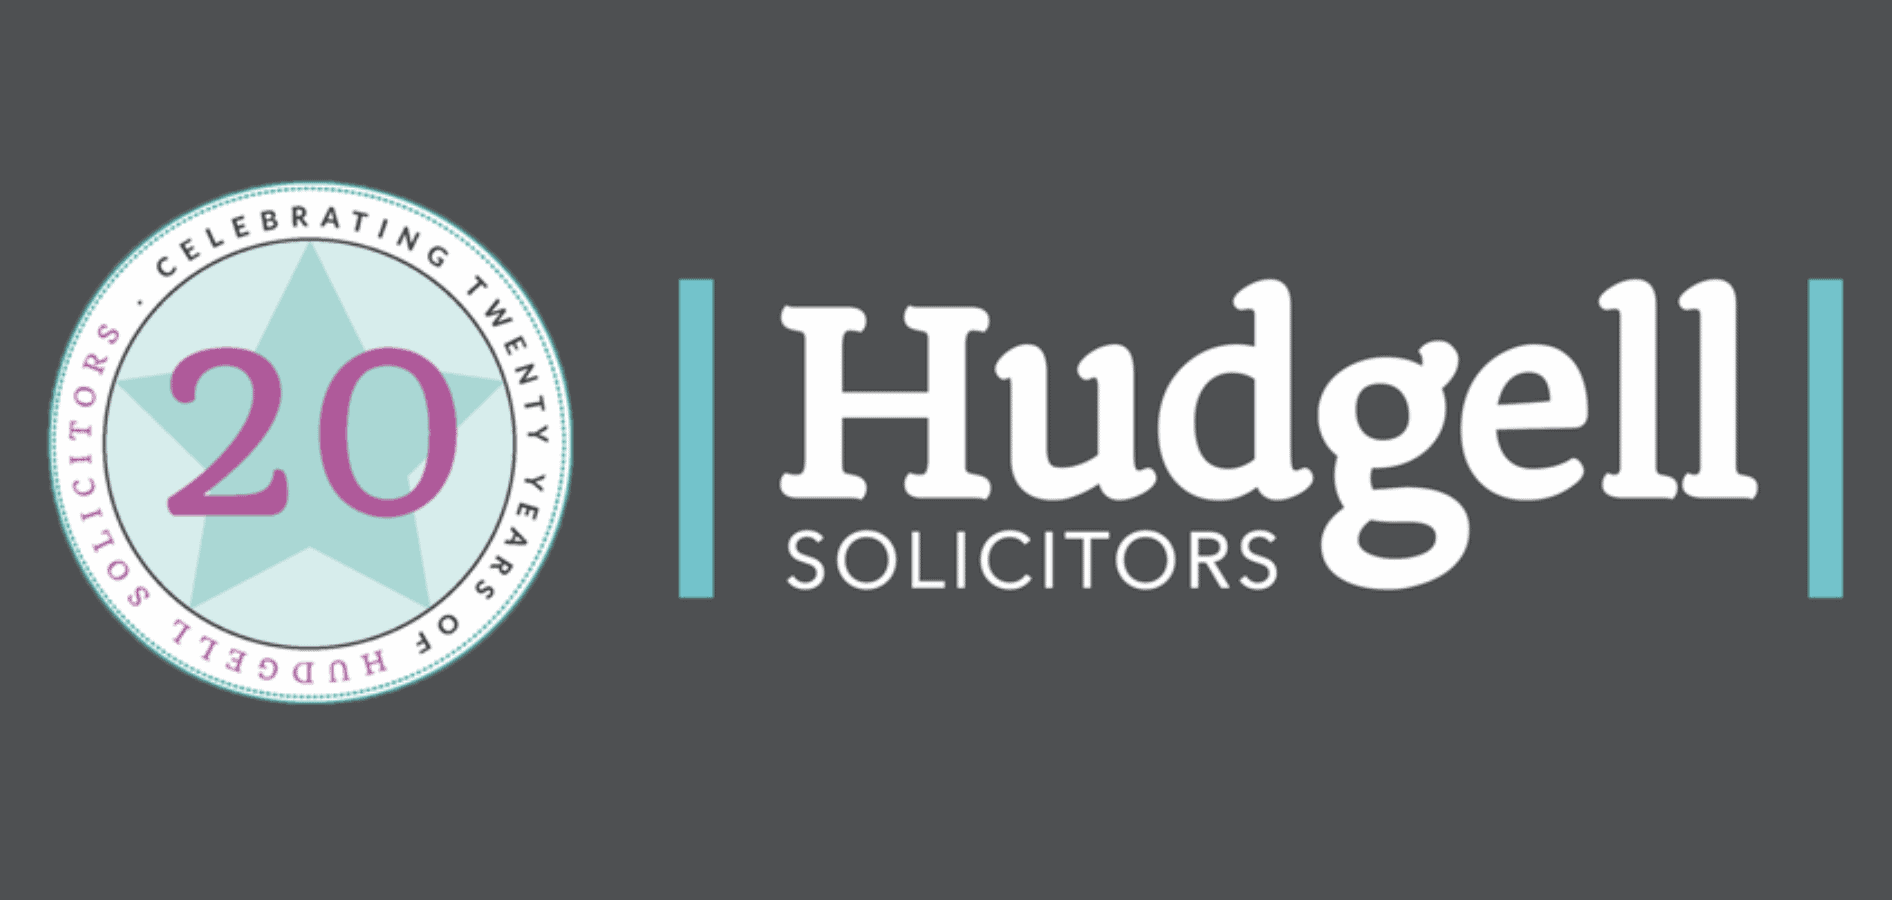 Action for Brain Injury Week: Neil Hudgell Solicitors supports calls to protect support for brain injury victims